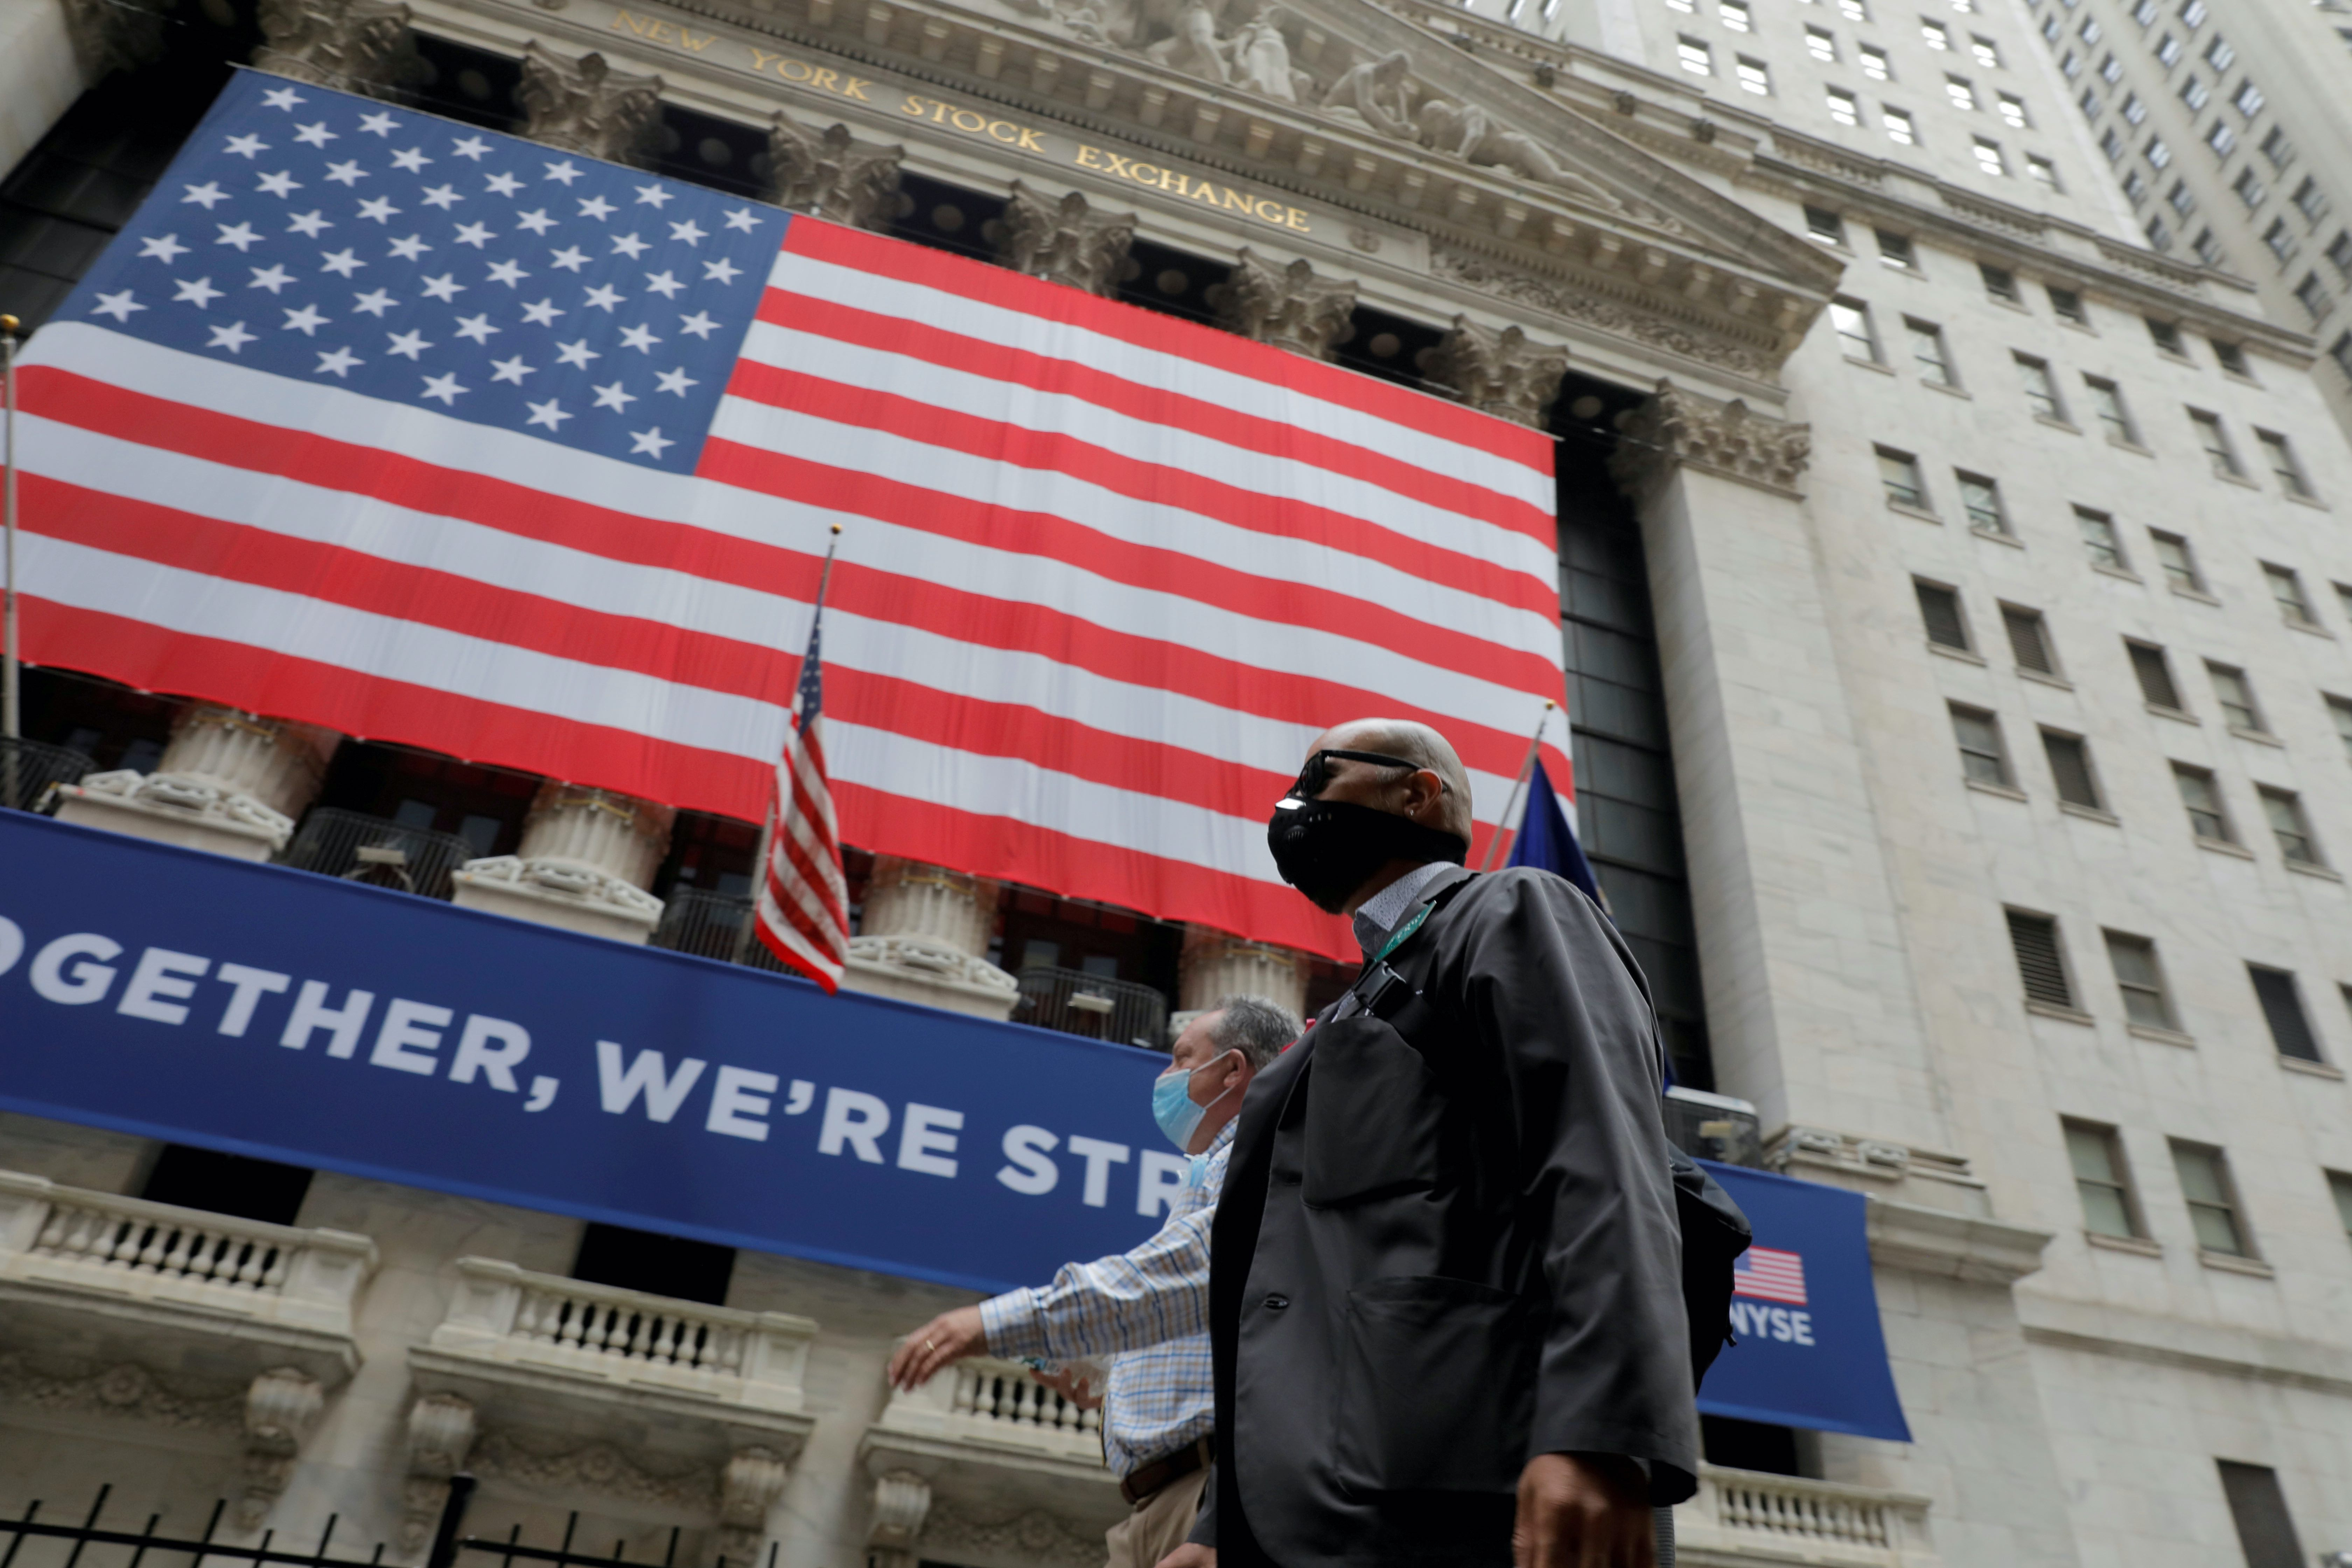 Uncertainty reigns on Wall Street as United States officials struggle to pass another round of stimulus measures